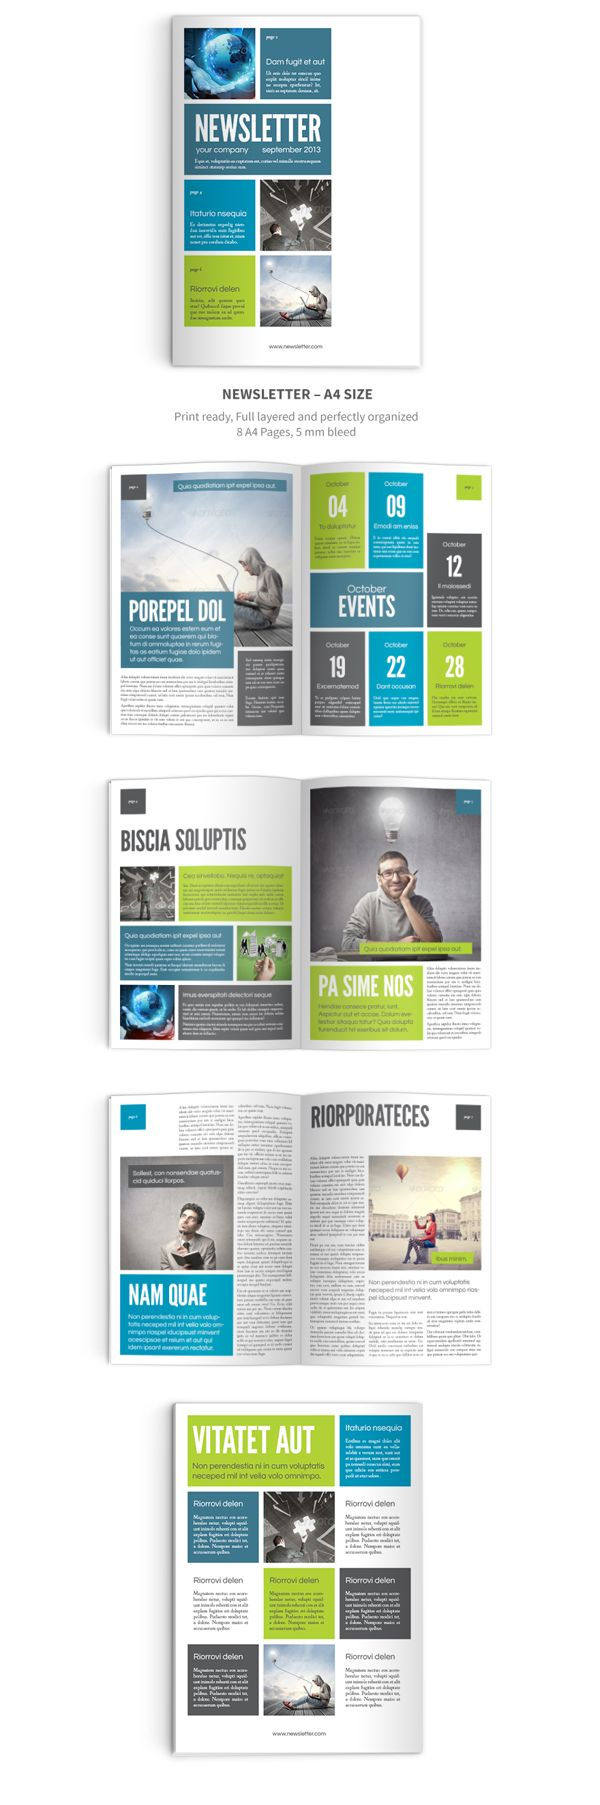 Newsletter Indesign Template by Jan Styblo , via Behance | Ideas ...